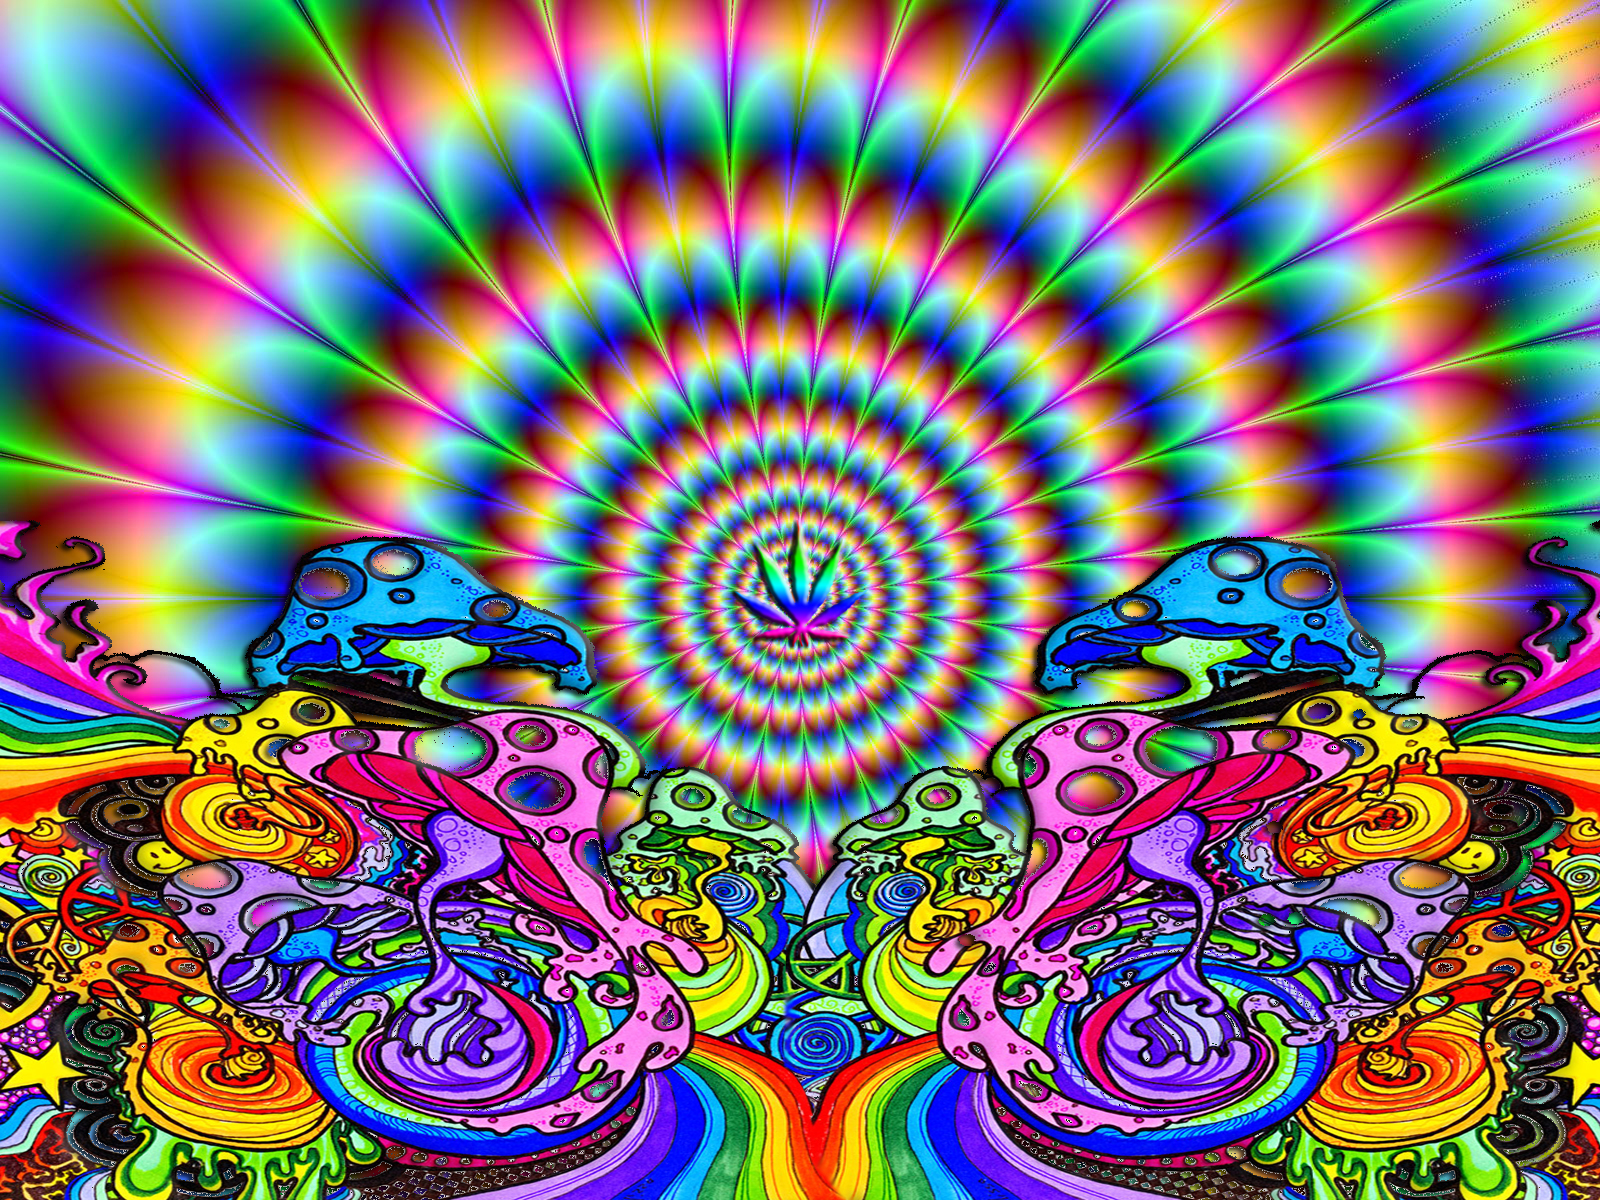 40 Psychedelic And Trippy Backgrounds For Your Desktop